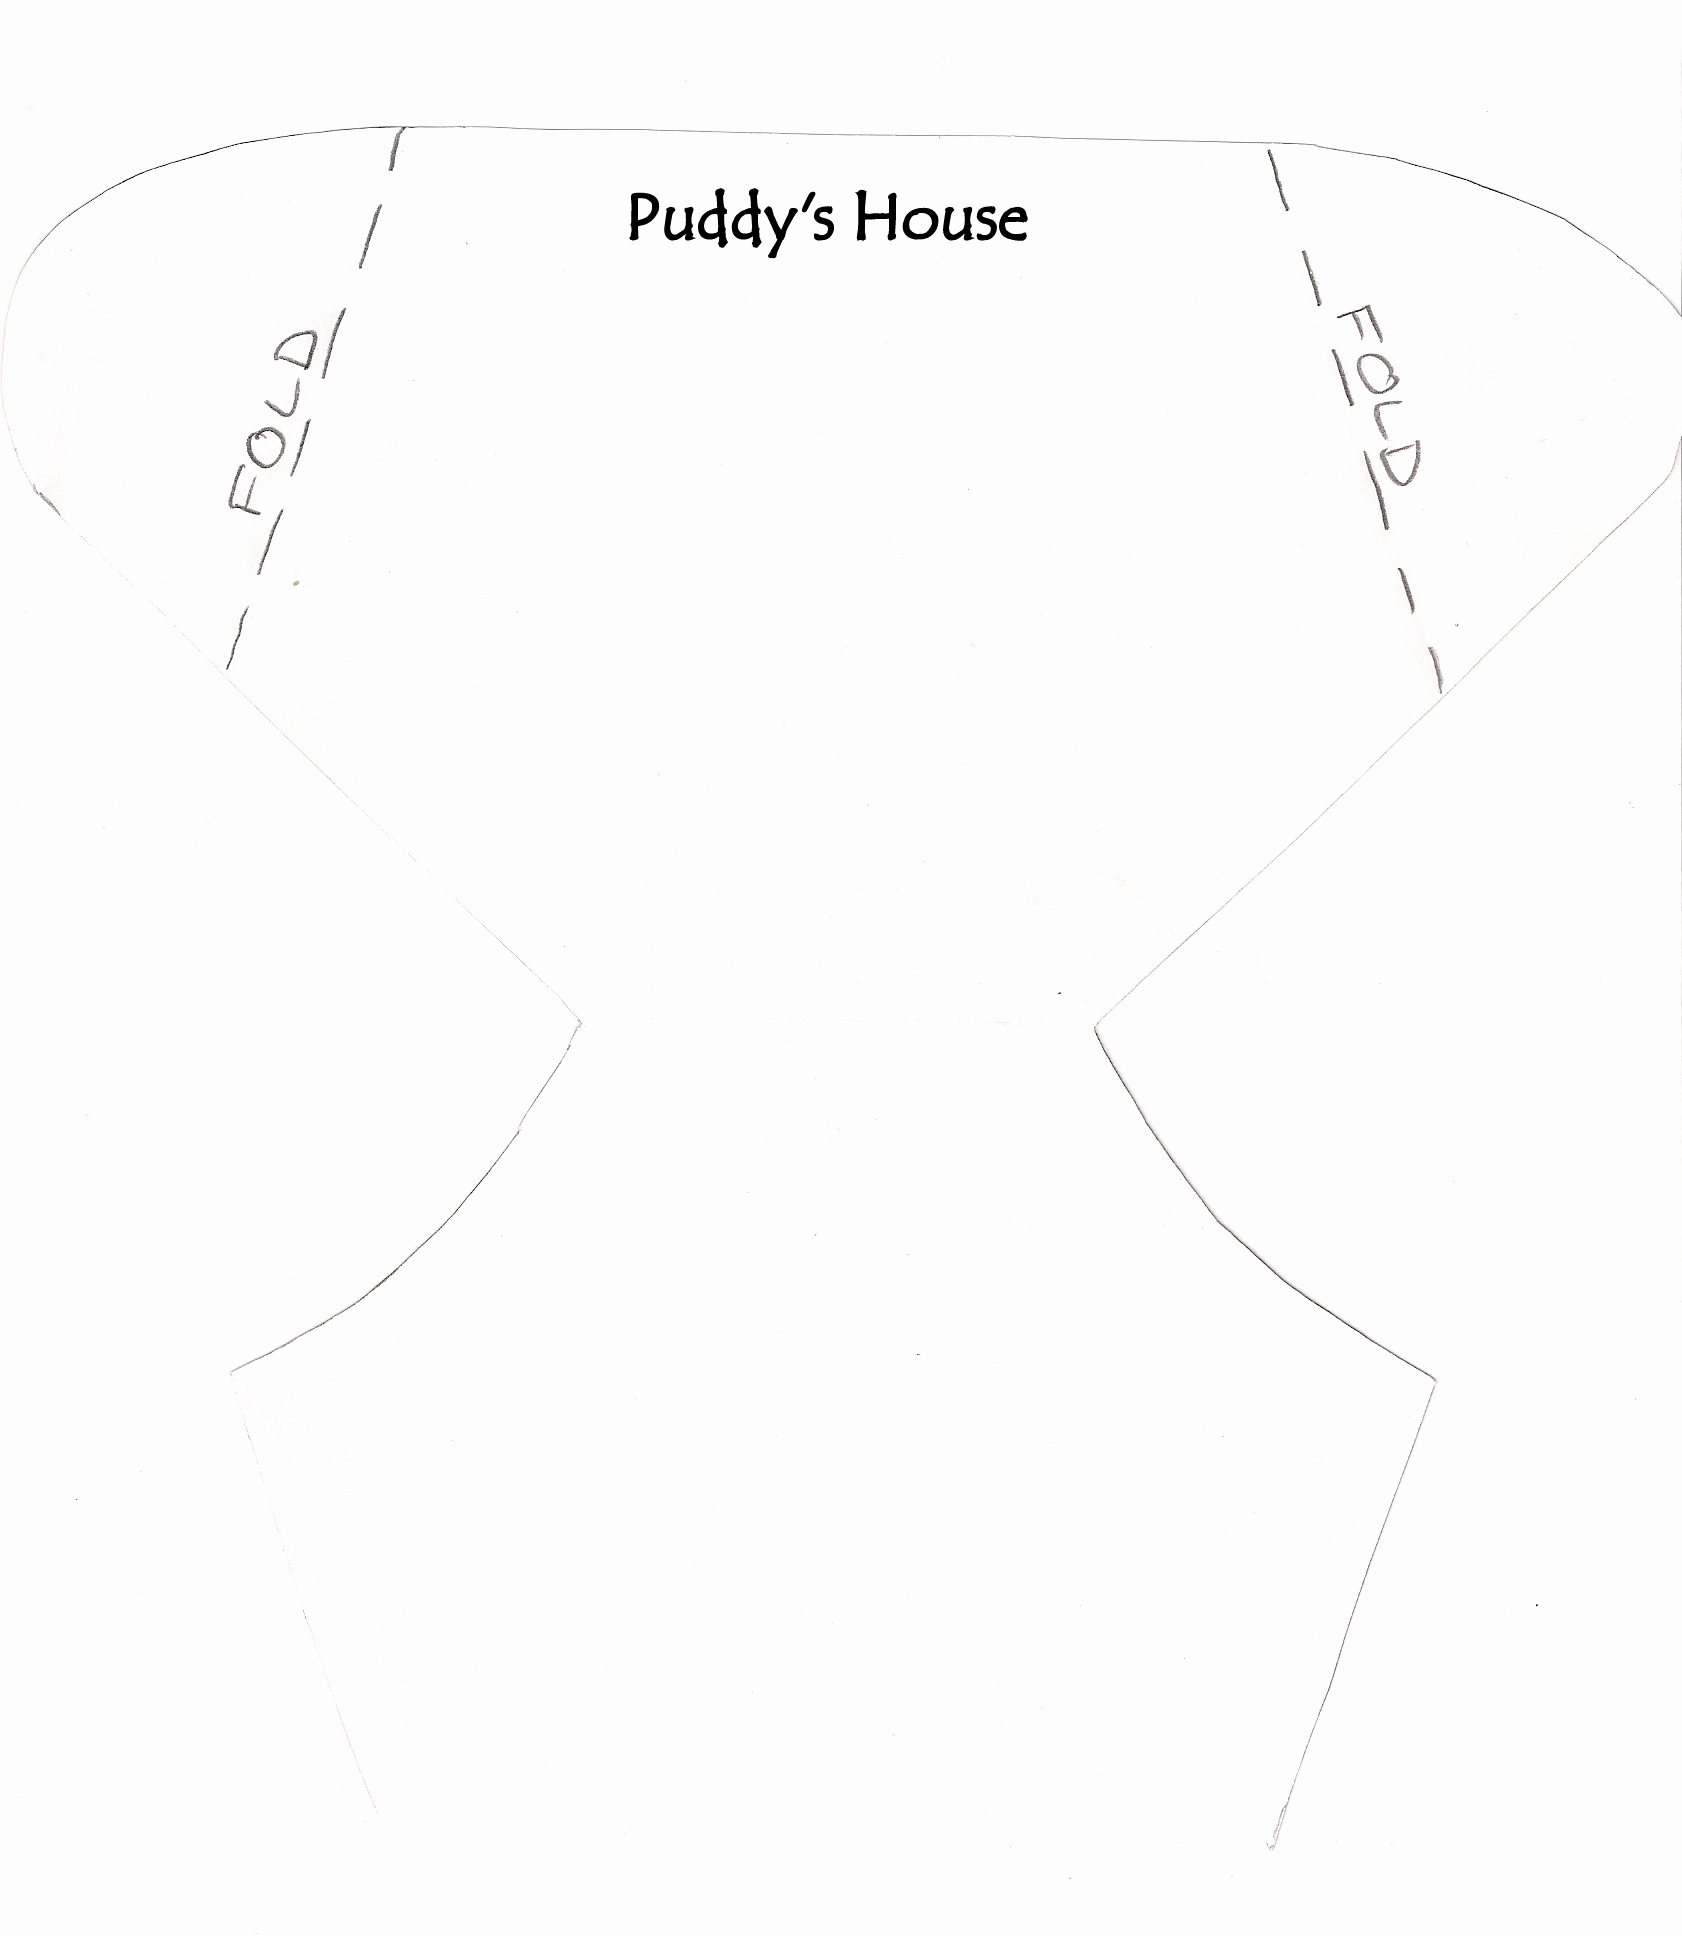 Diaper Invitation Cut Out New Diy Diaper Invitation – Puddy S House